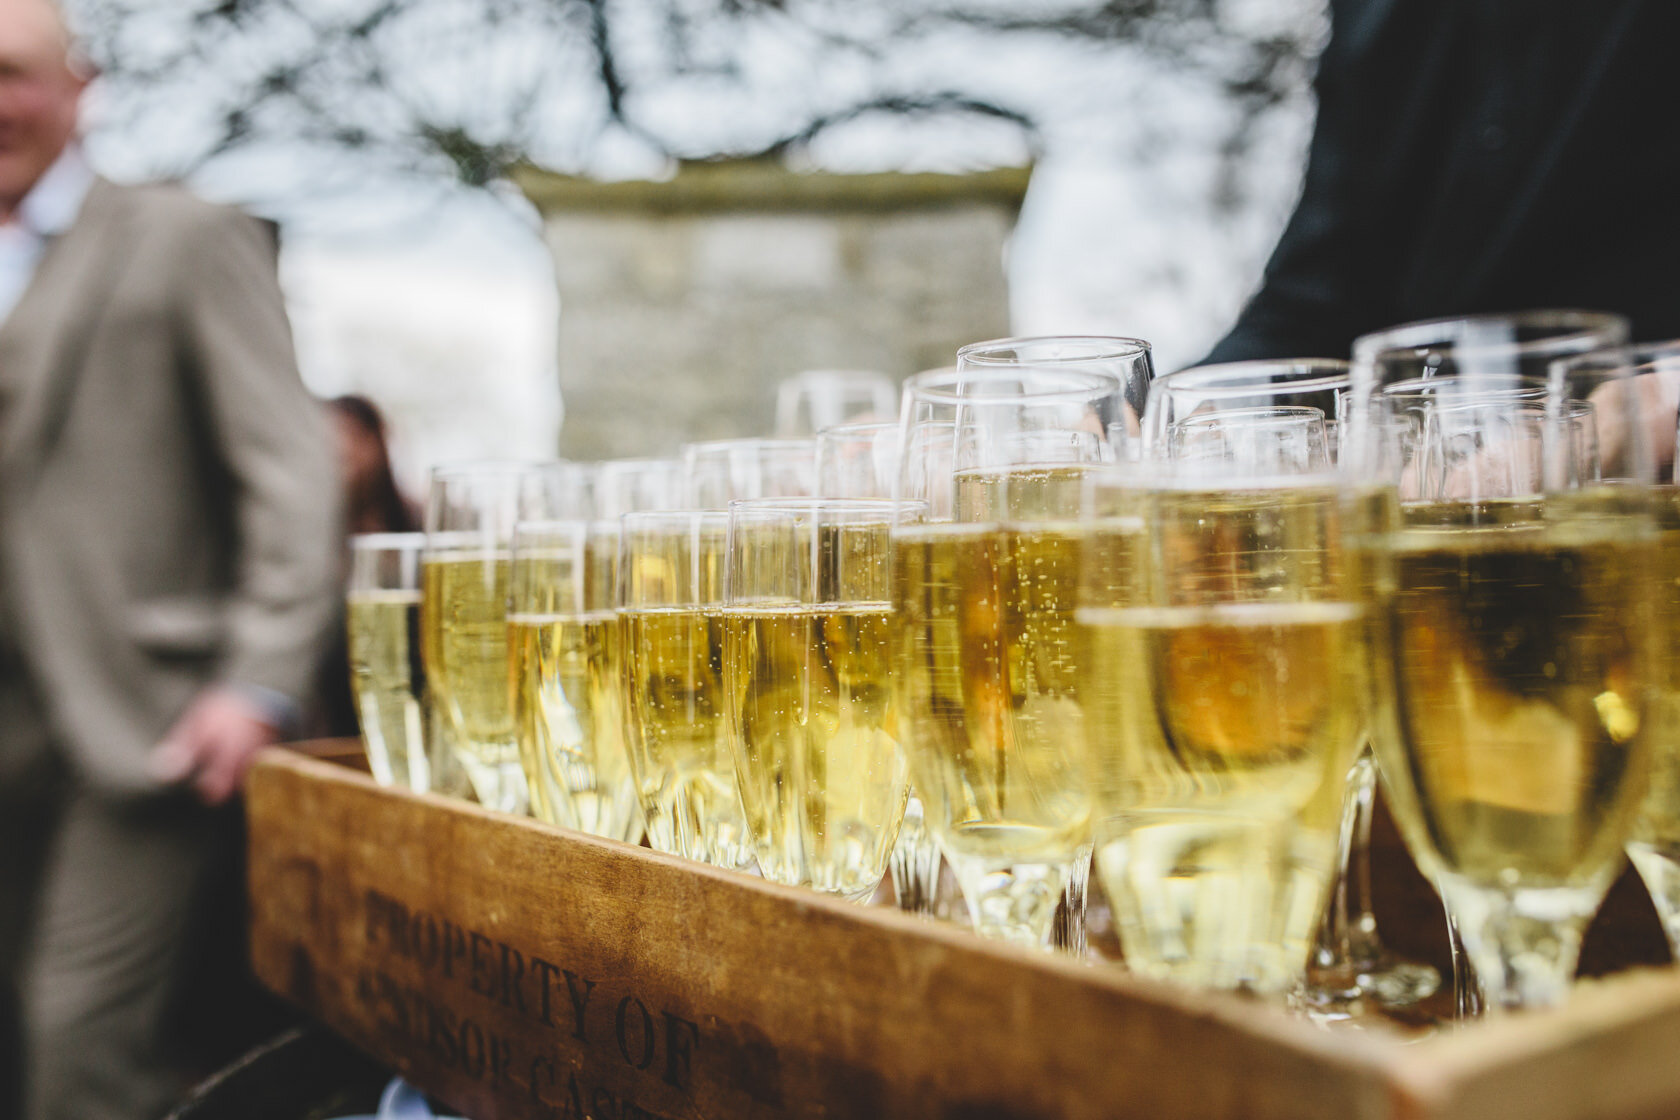 Speeches - All guests enjoy a glass of prosecco in celebration of your marriage